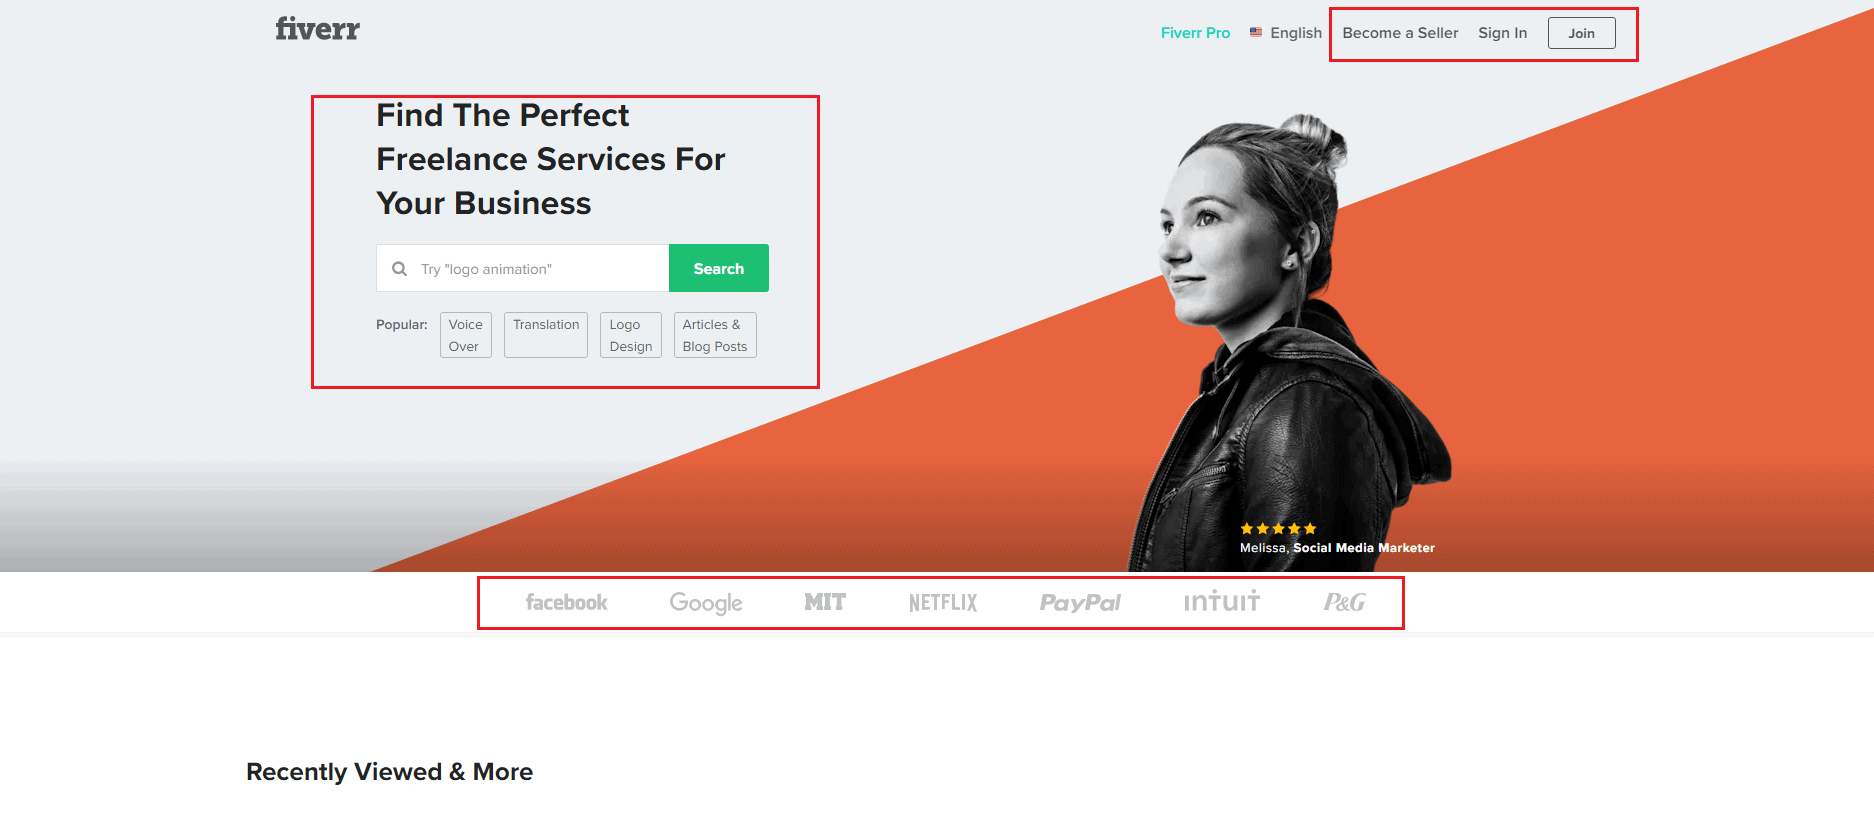 Fiverr's homepage is built for increasing clicks and conversions